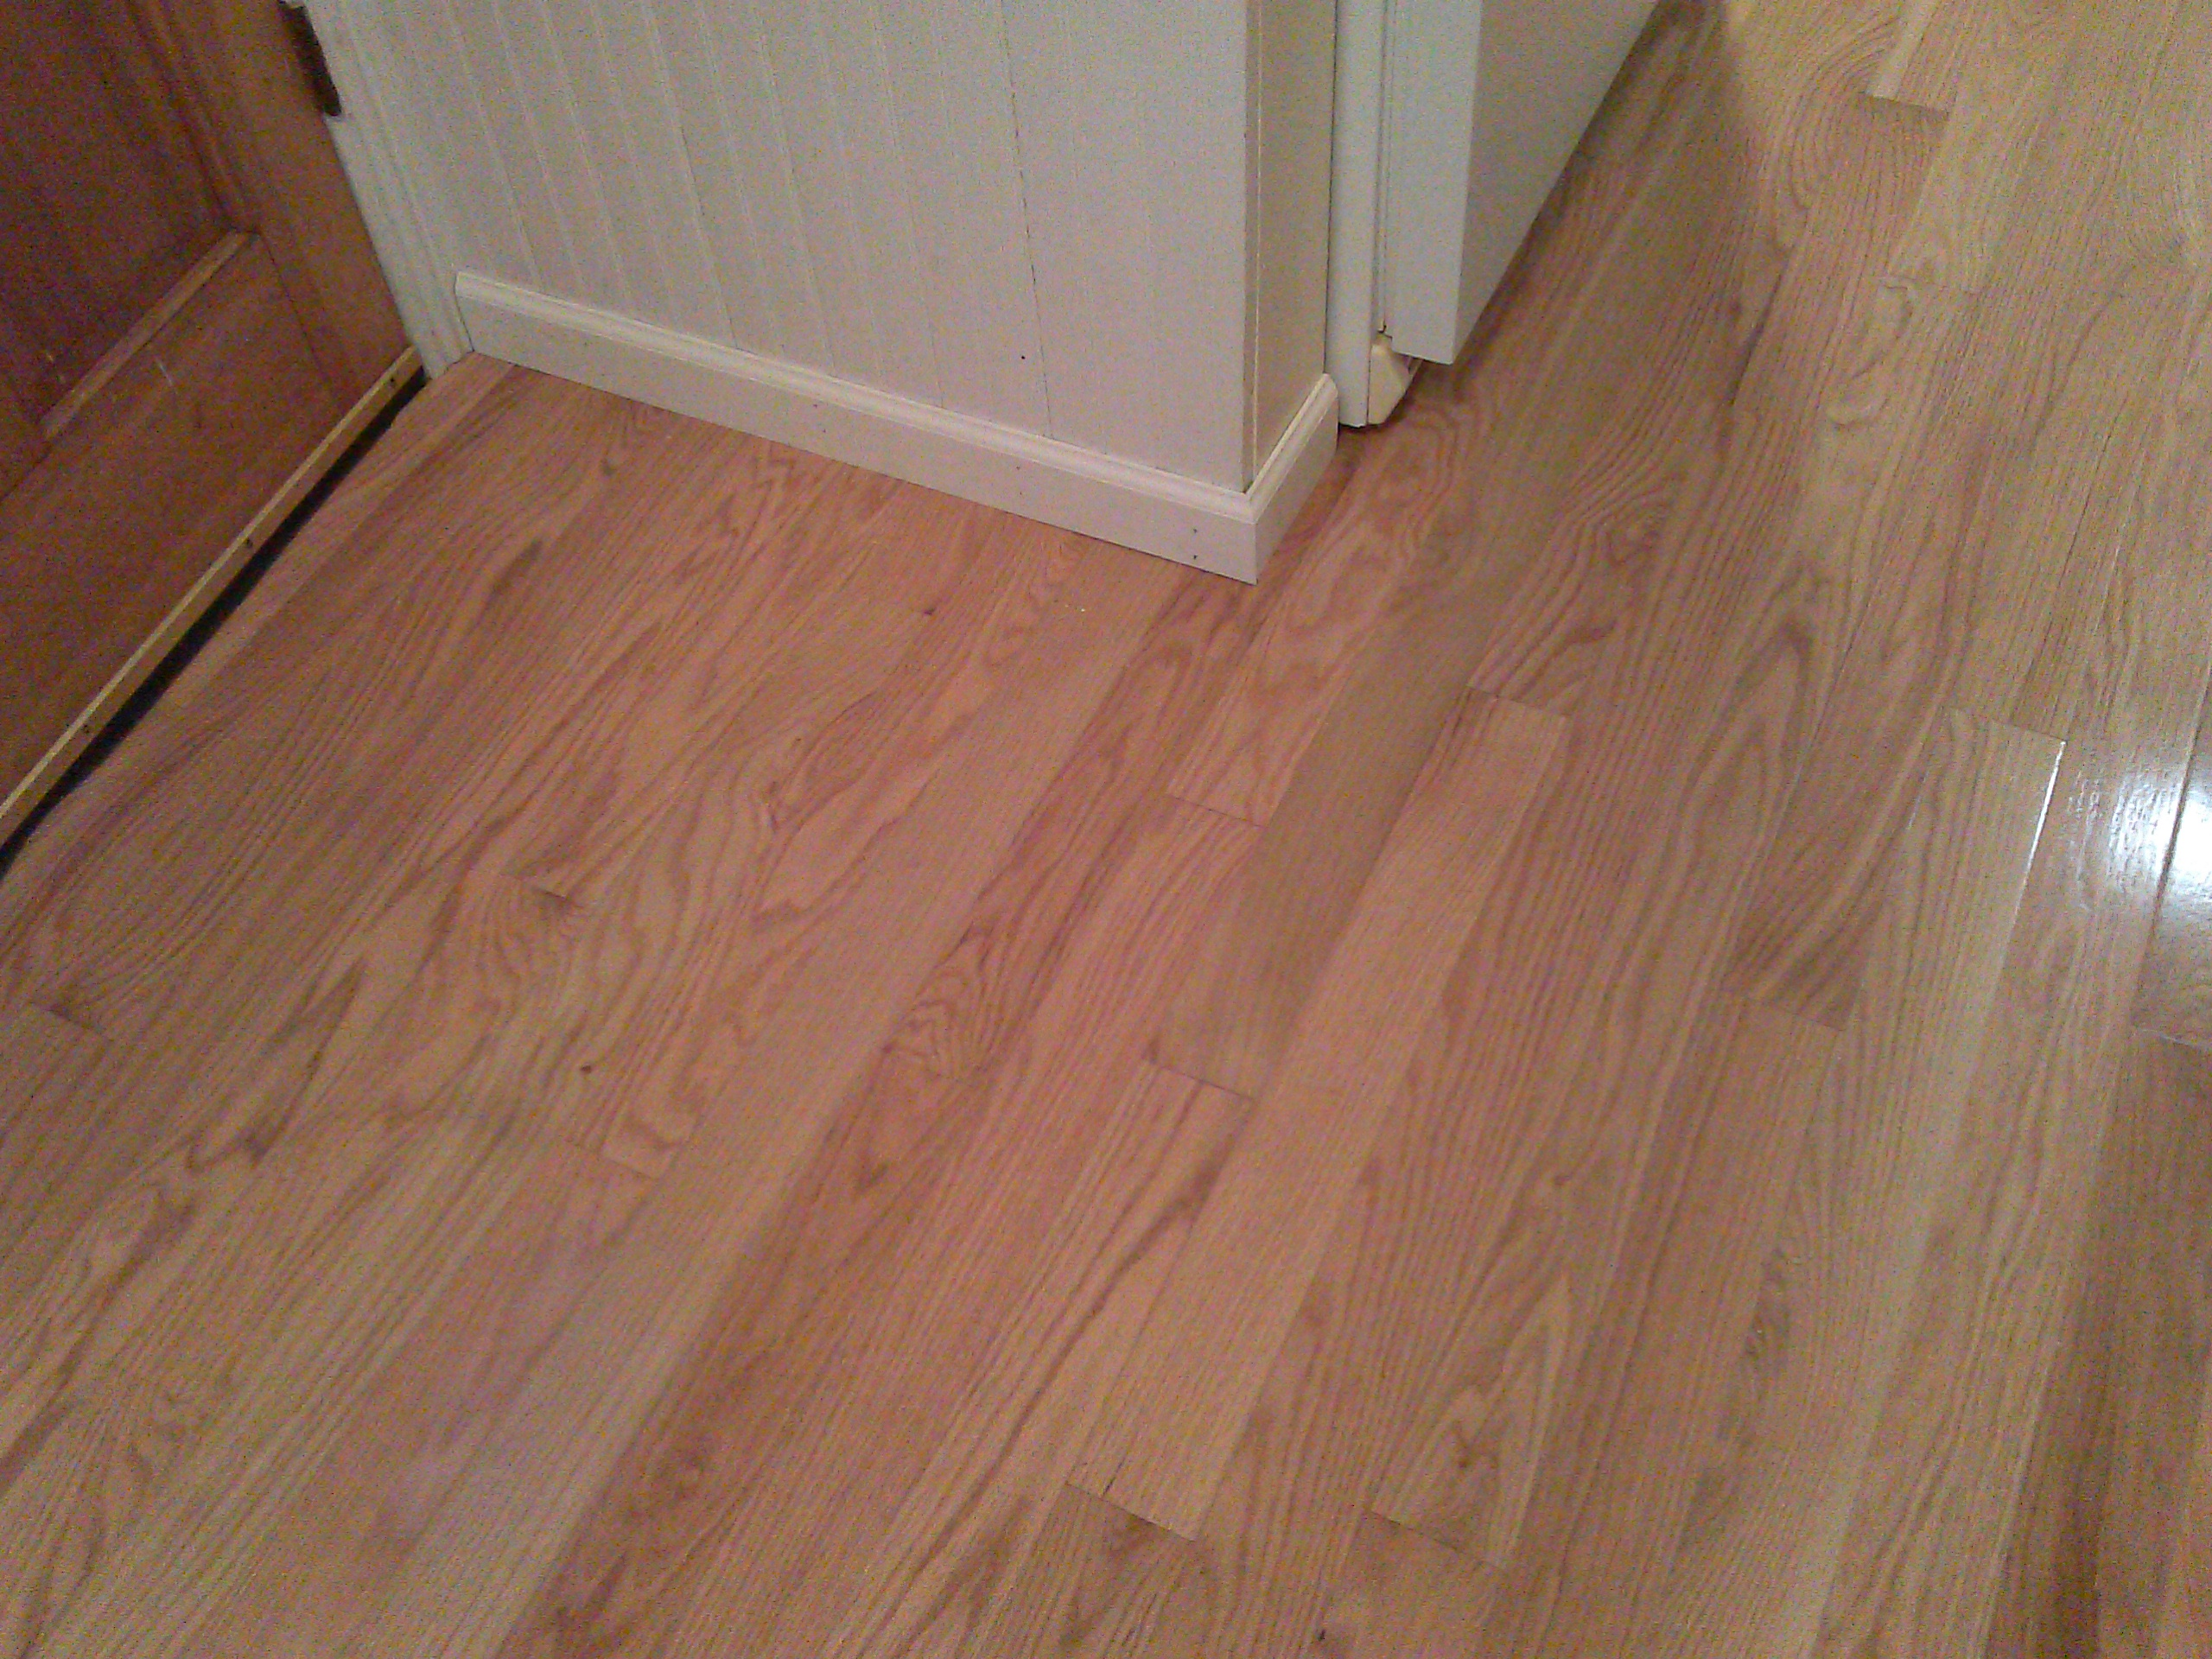 Red oak vs white oak hardwood the flooring blog for Red oak hardwood flooring